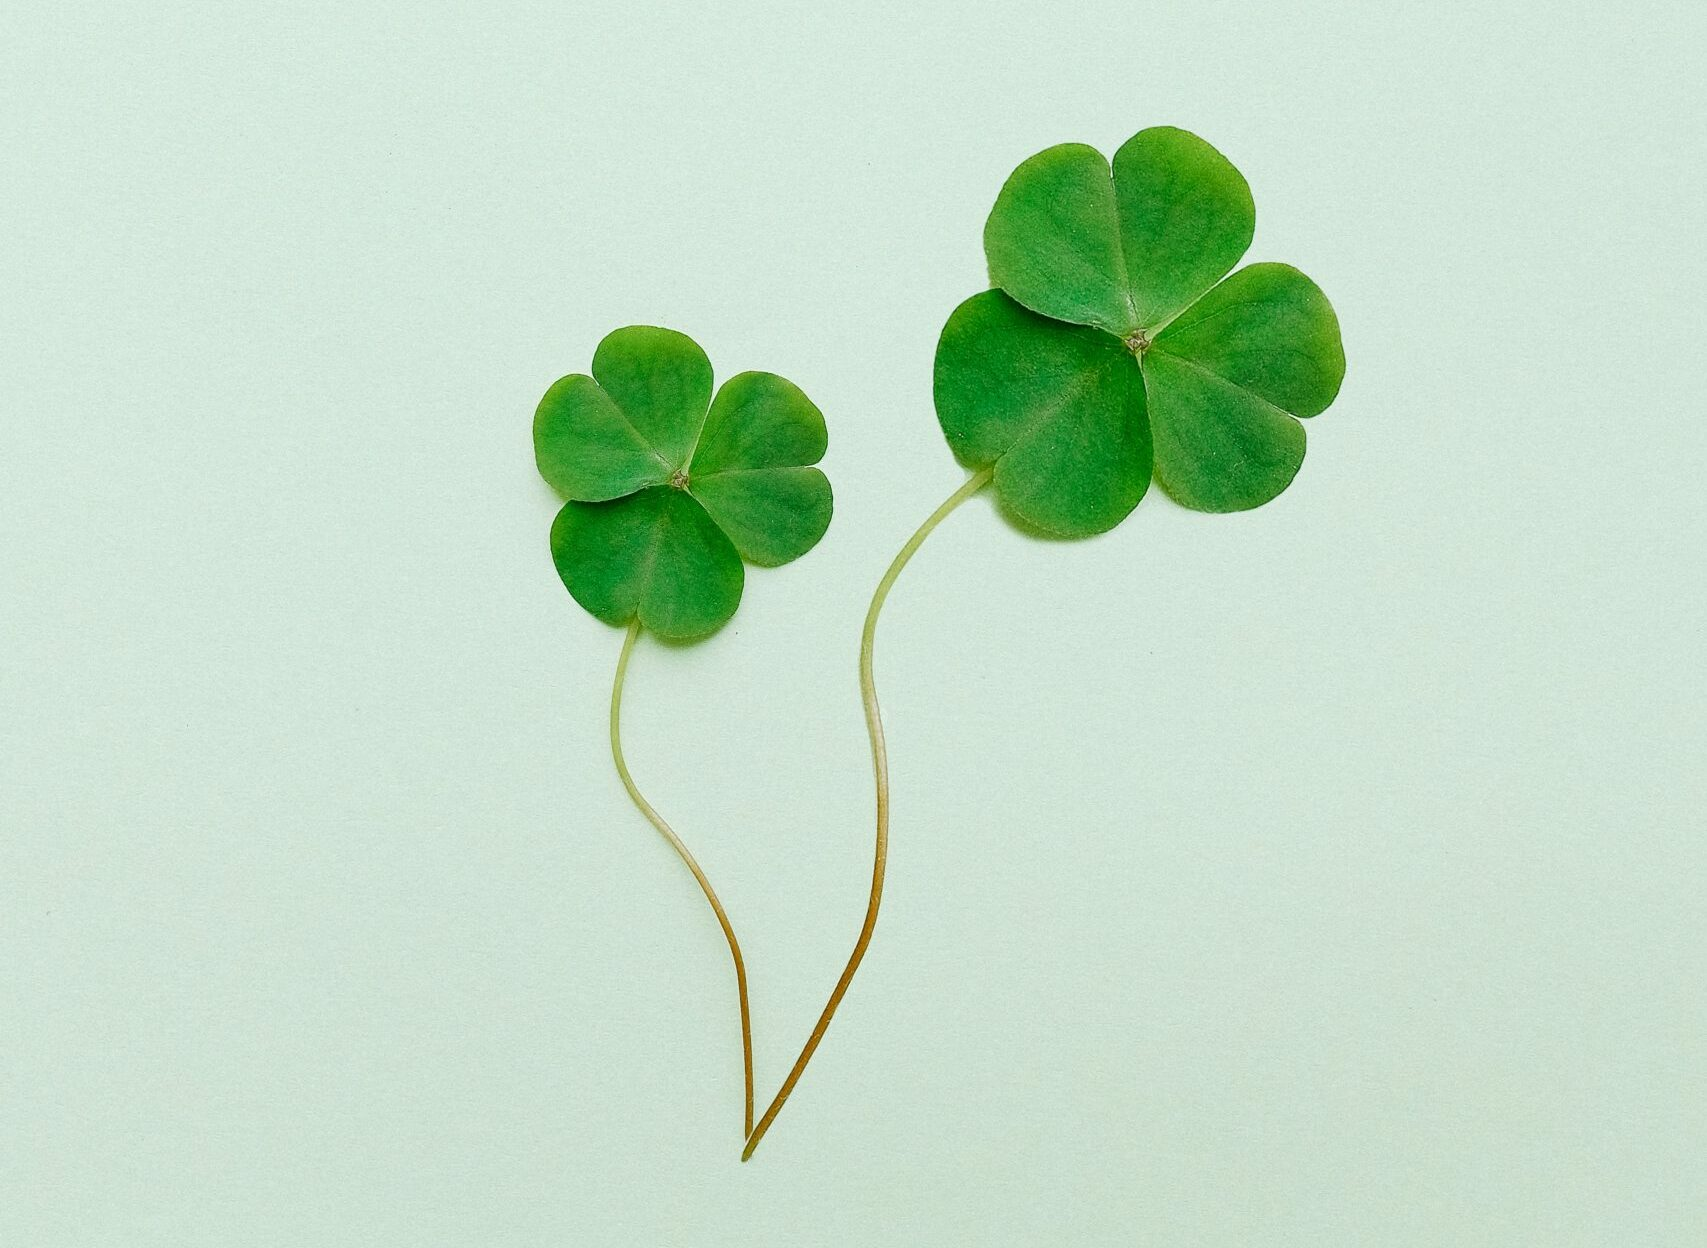 The world's strangest superstitions 44